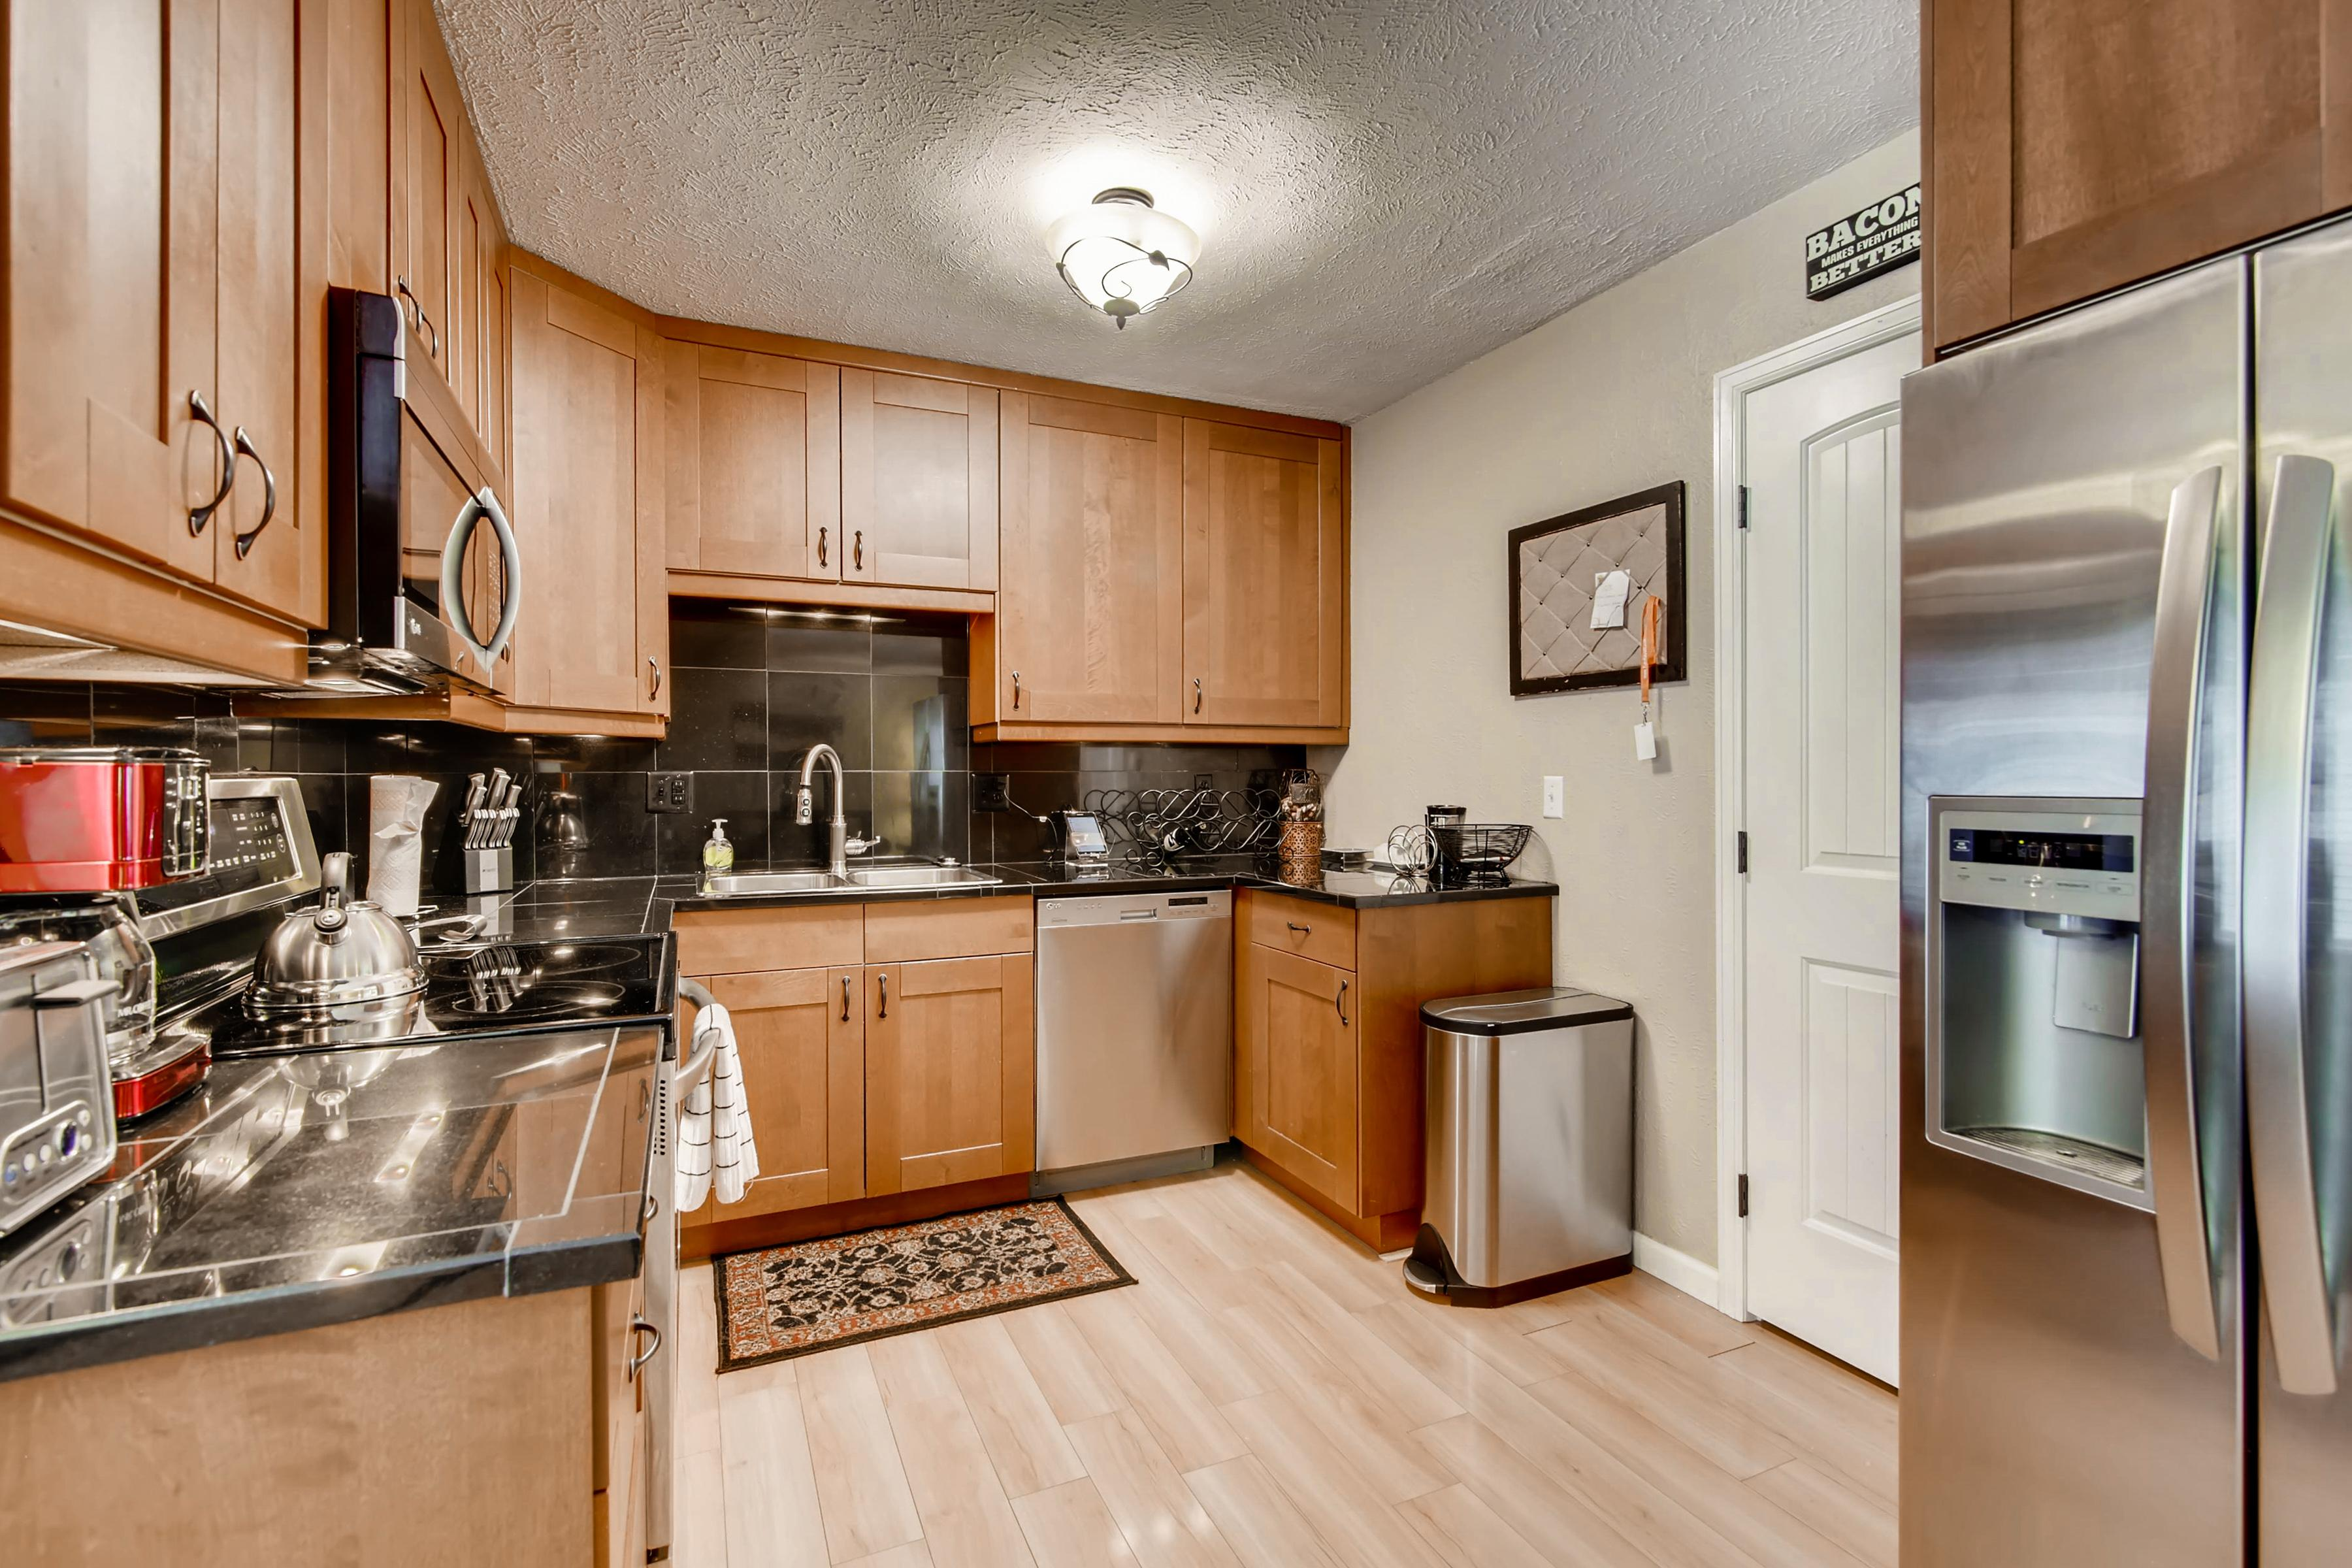 The chef in your group will appreciate the gourmet kitchen with stylish wooden cabinetry and stainless steel appliances.